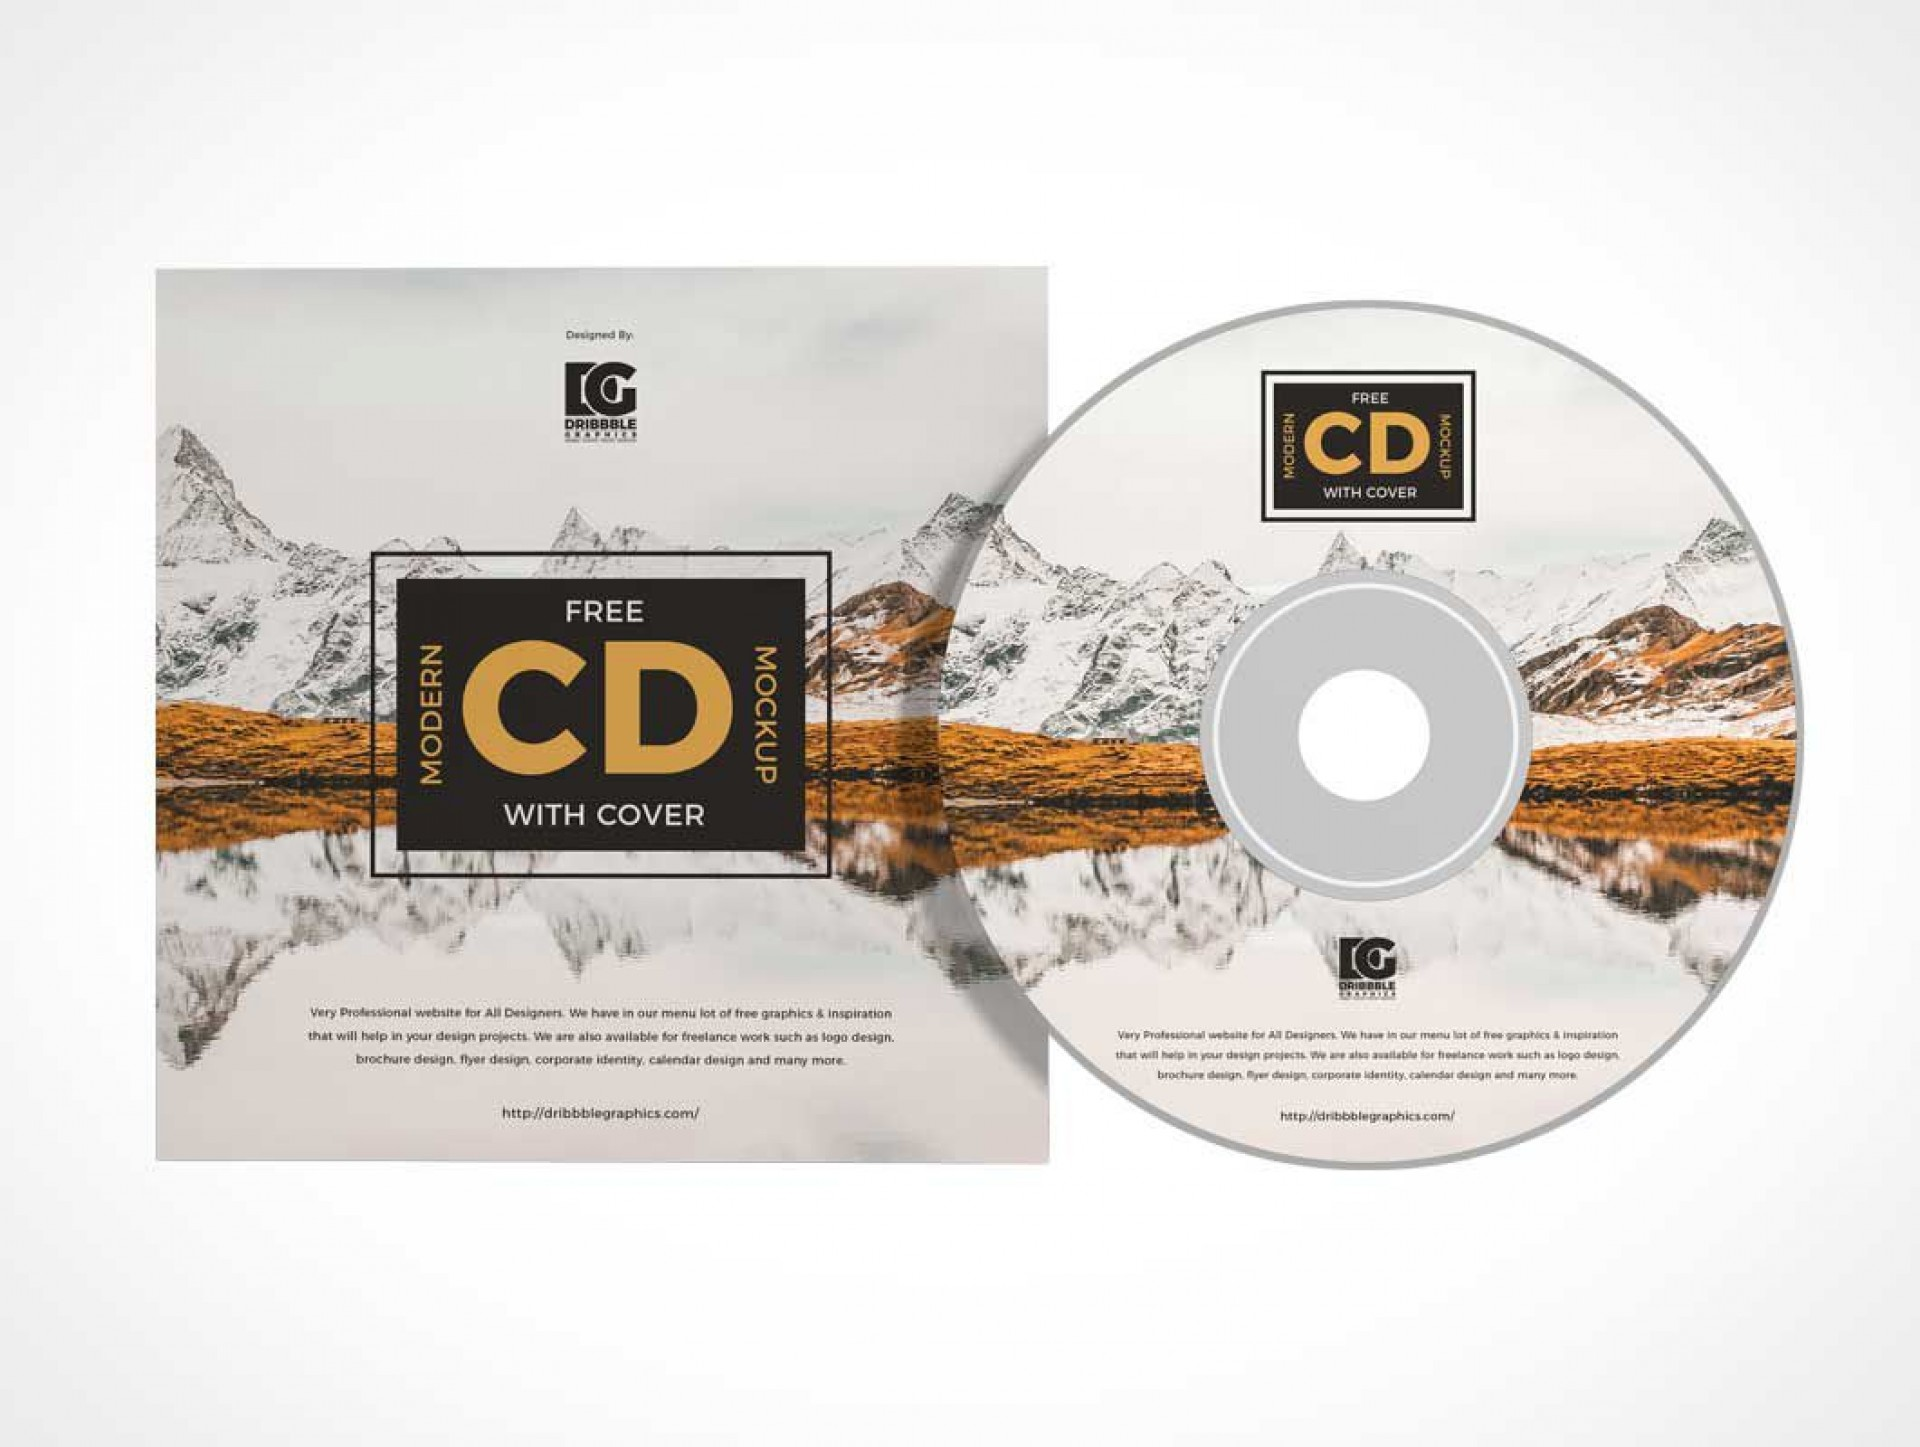 006 Stunning Music Cd Cover Design Template Free Download High Definition 1920